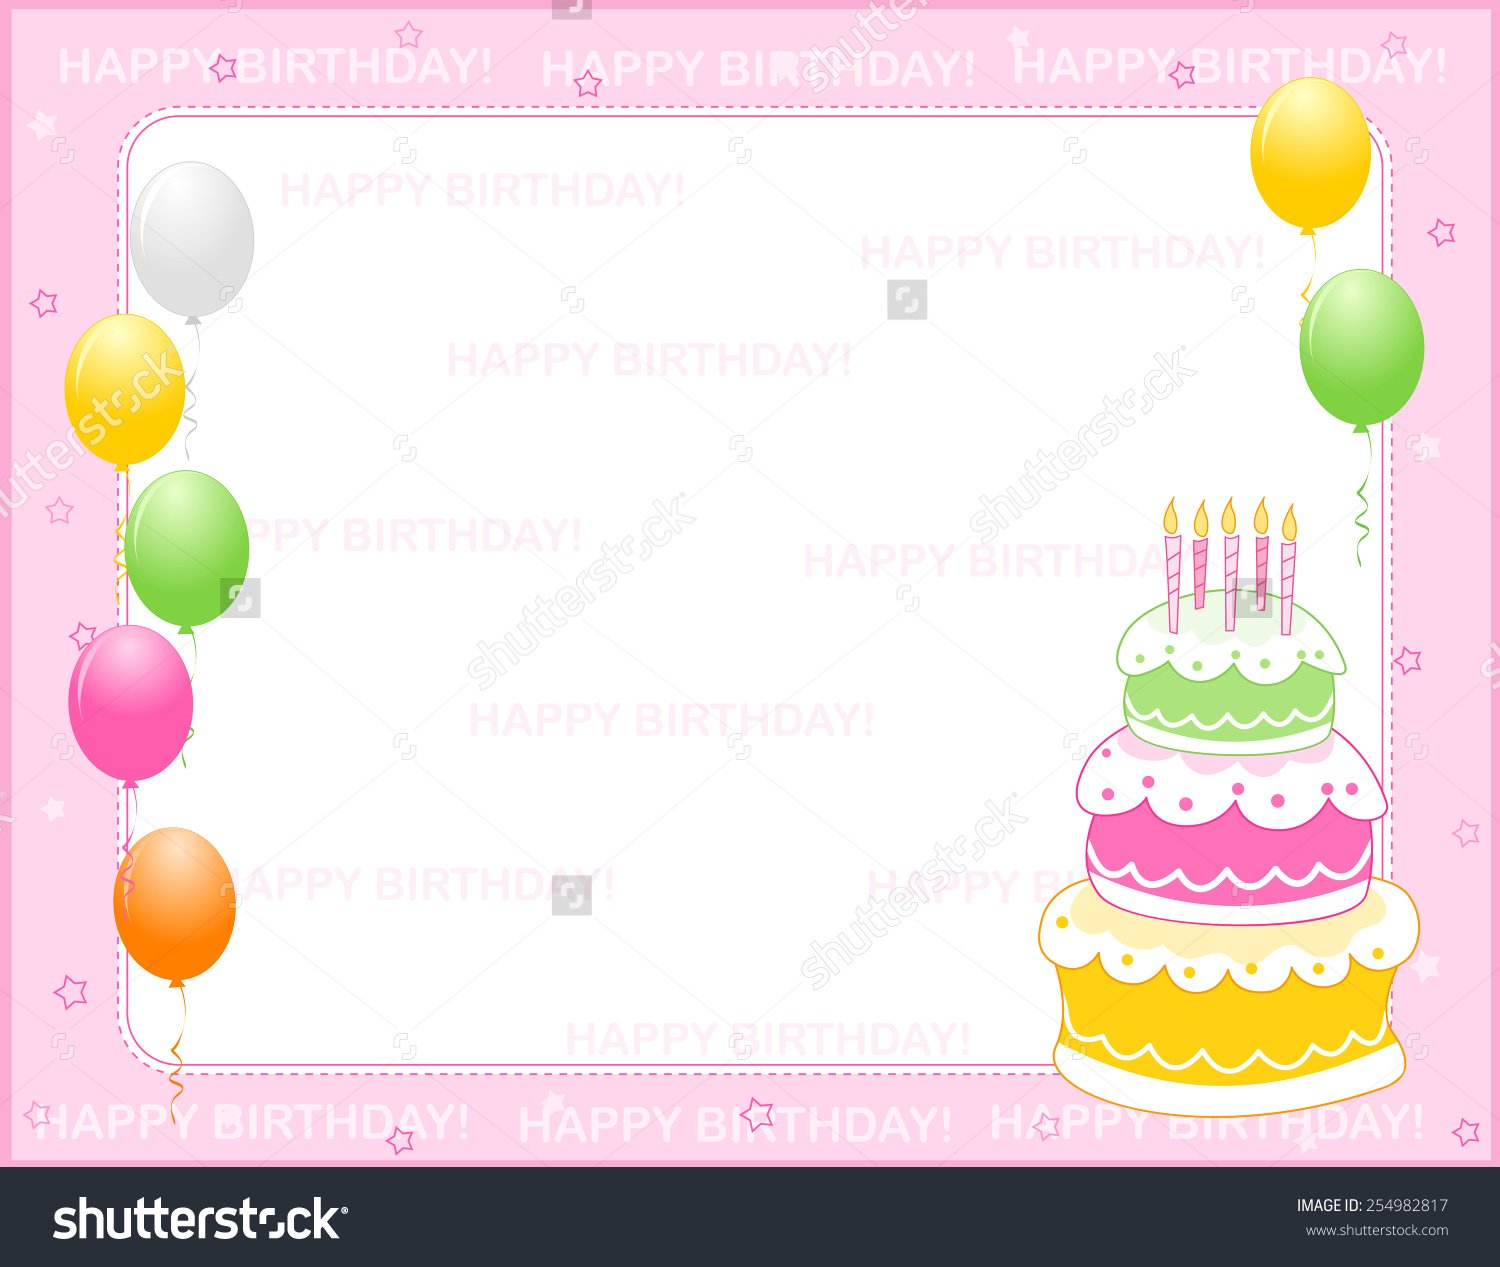 Birthday Invitation Backgrounds Cloudinvitationcom 1500x1267